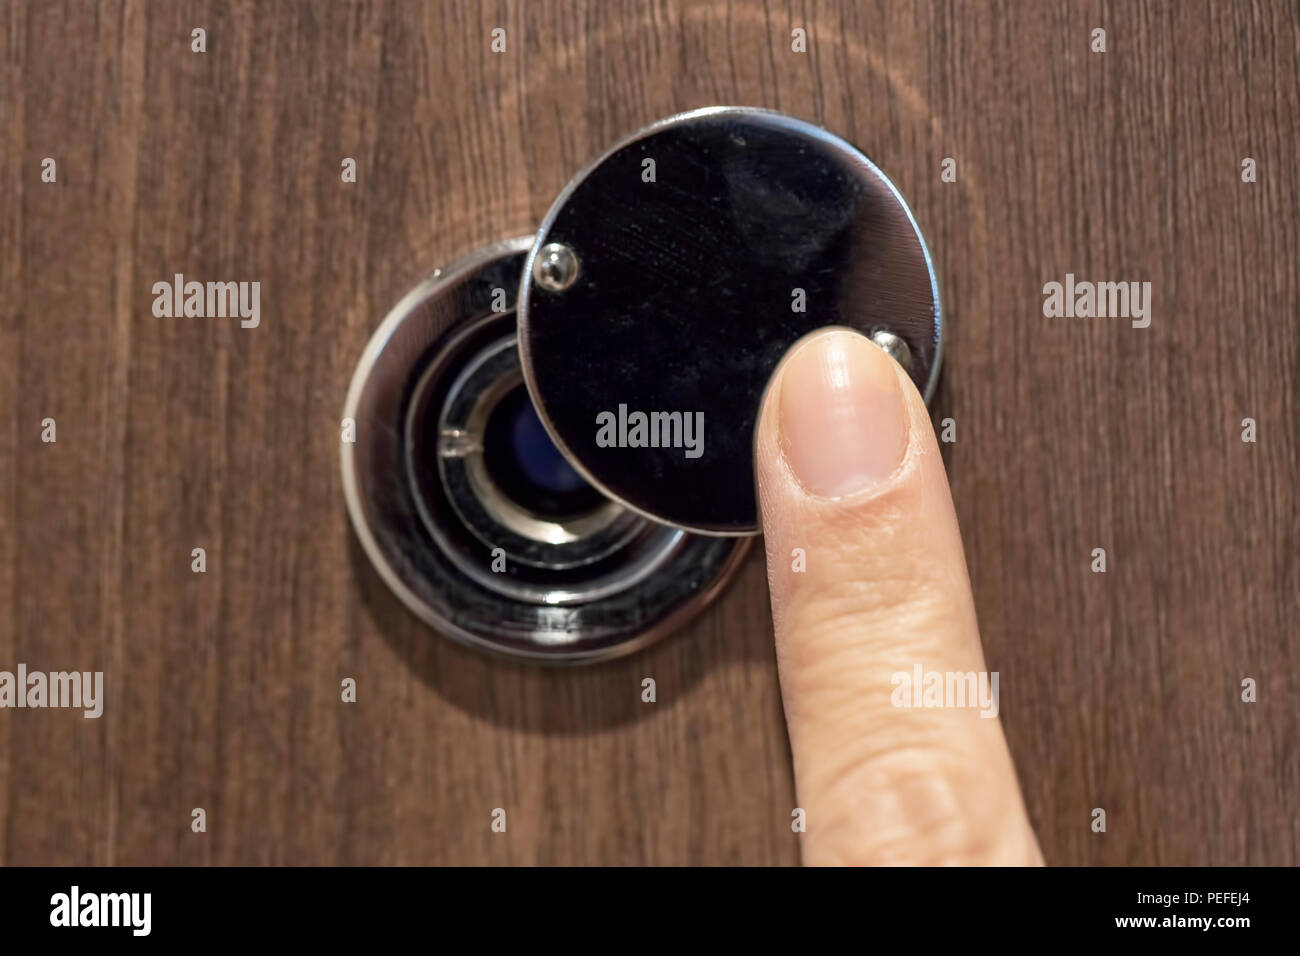 a female hand opens the cover door peephole - Stock Image